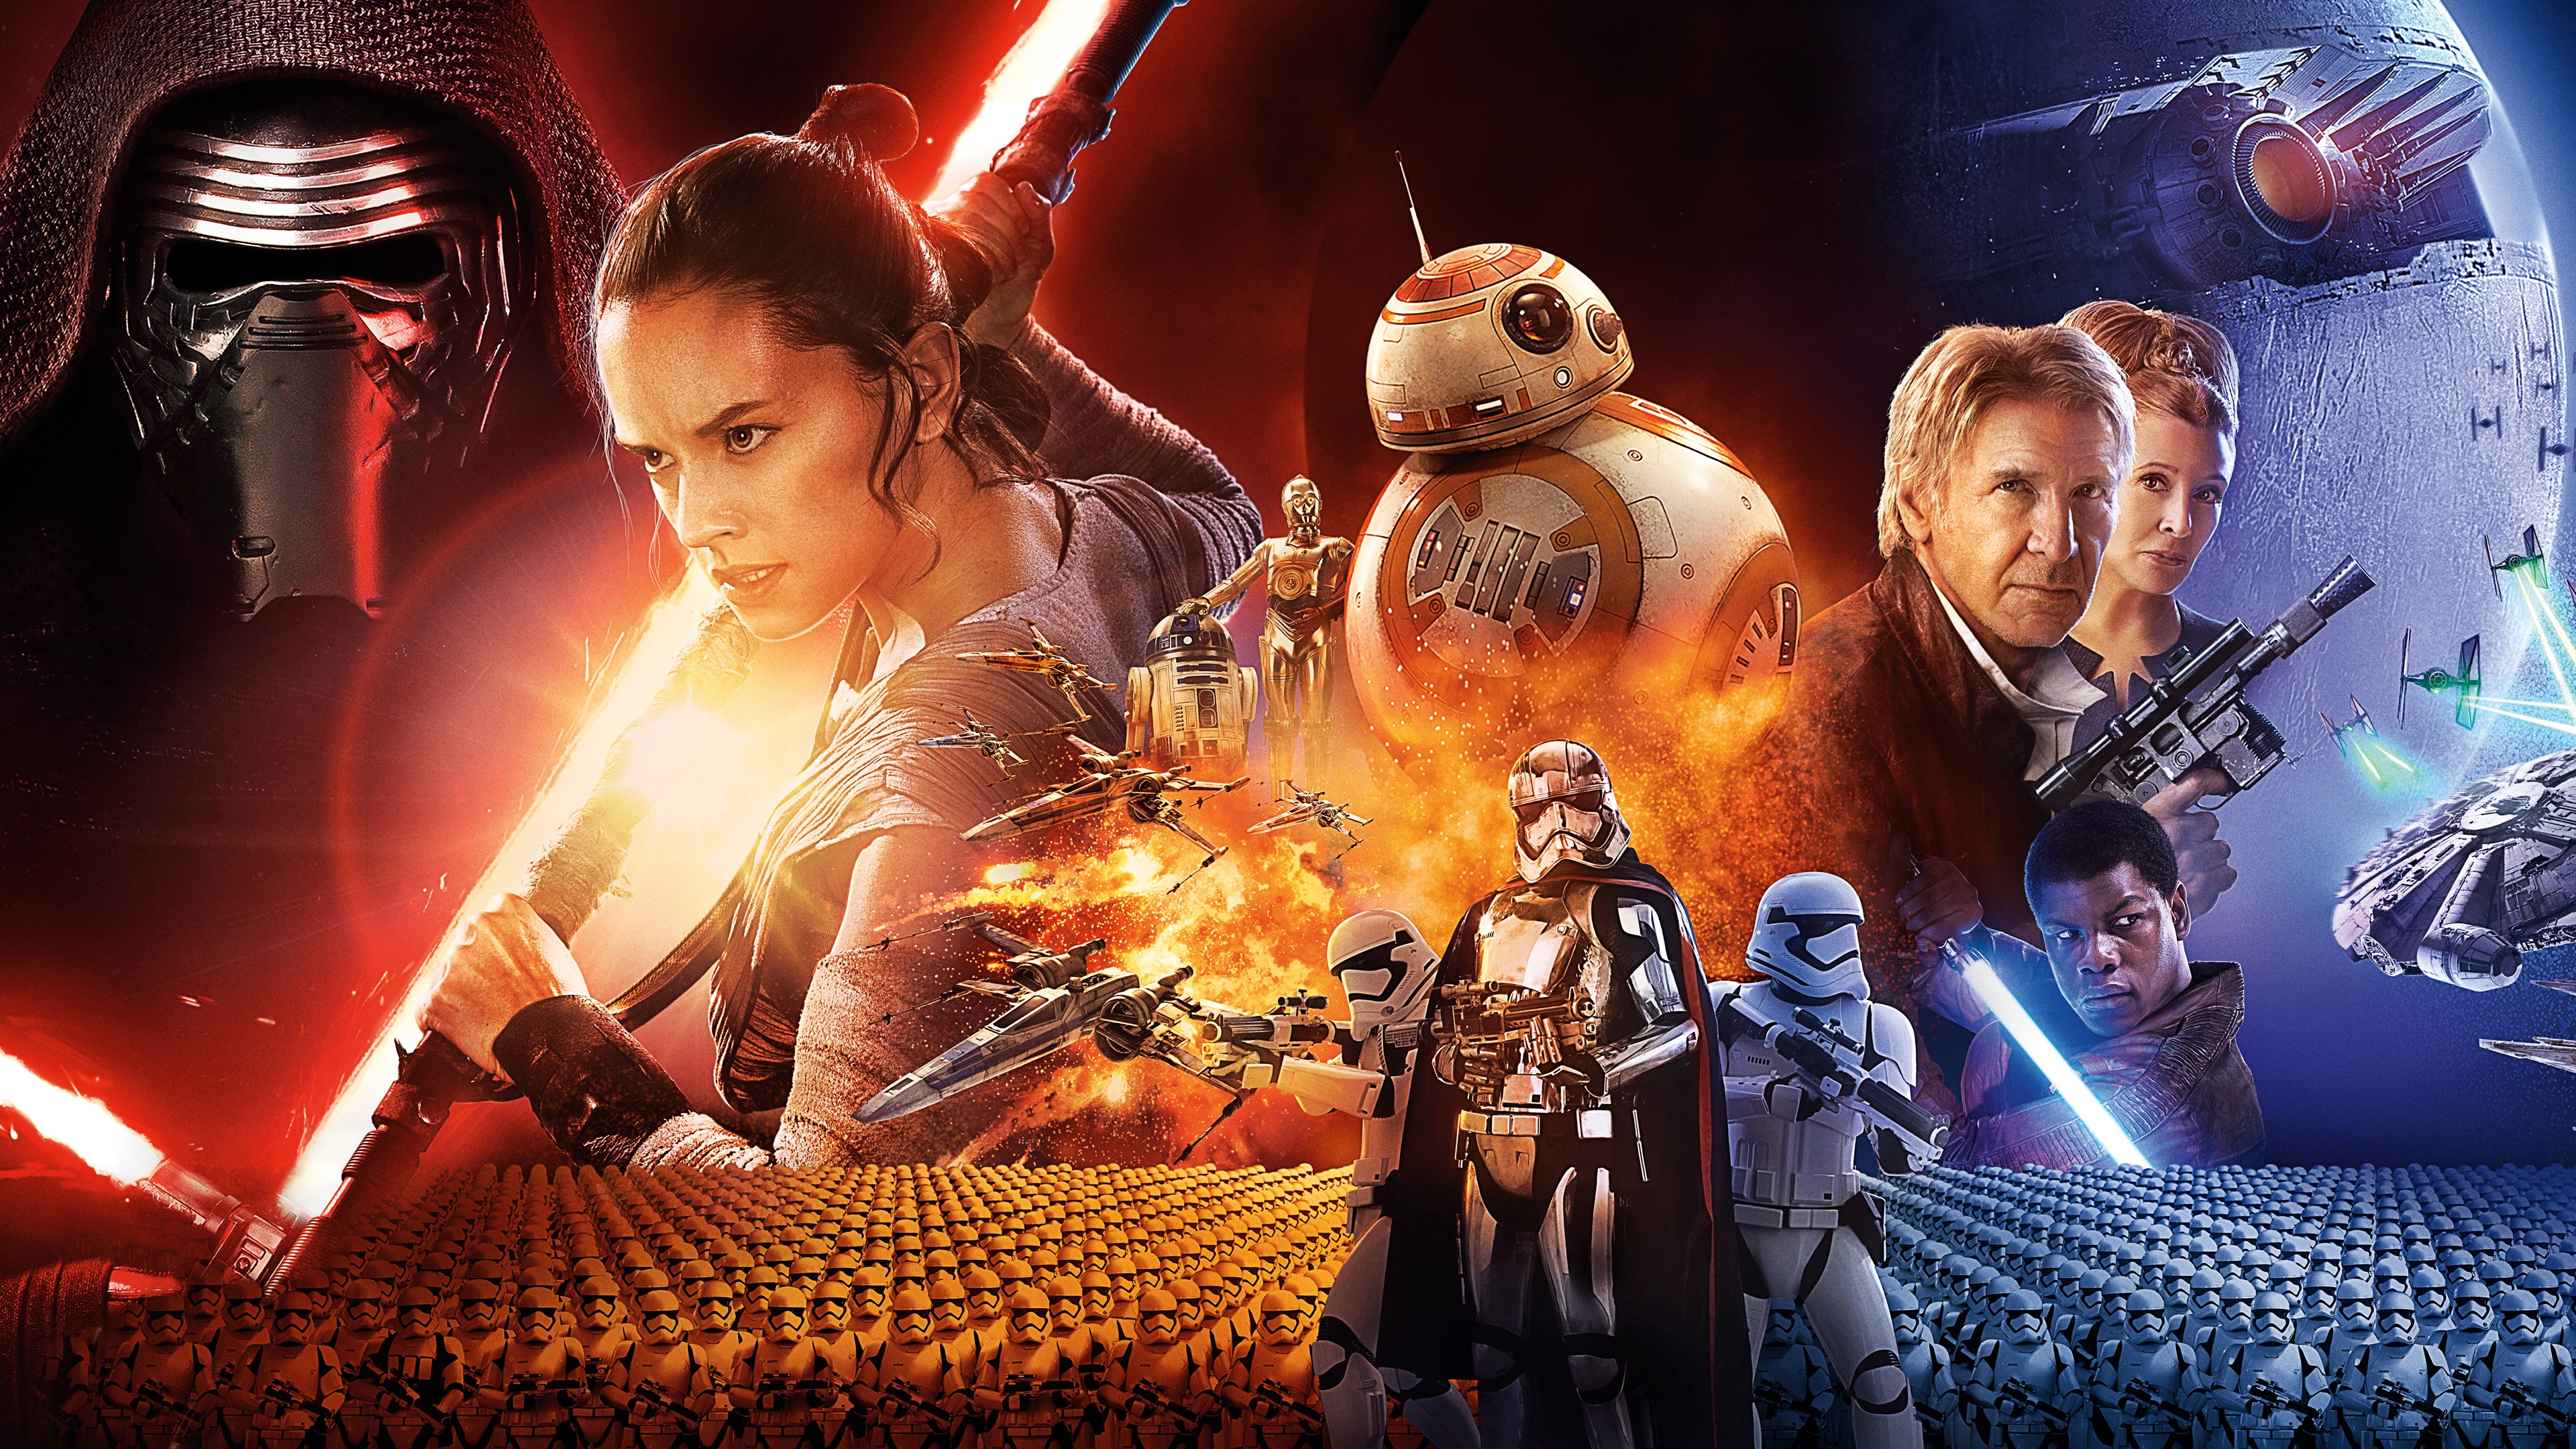 43 The Force Awakens Wallpapers On Wallpapersafari